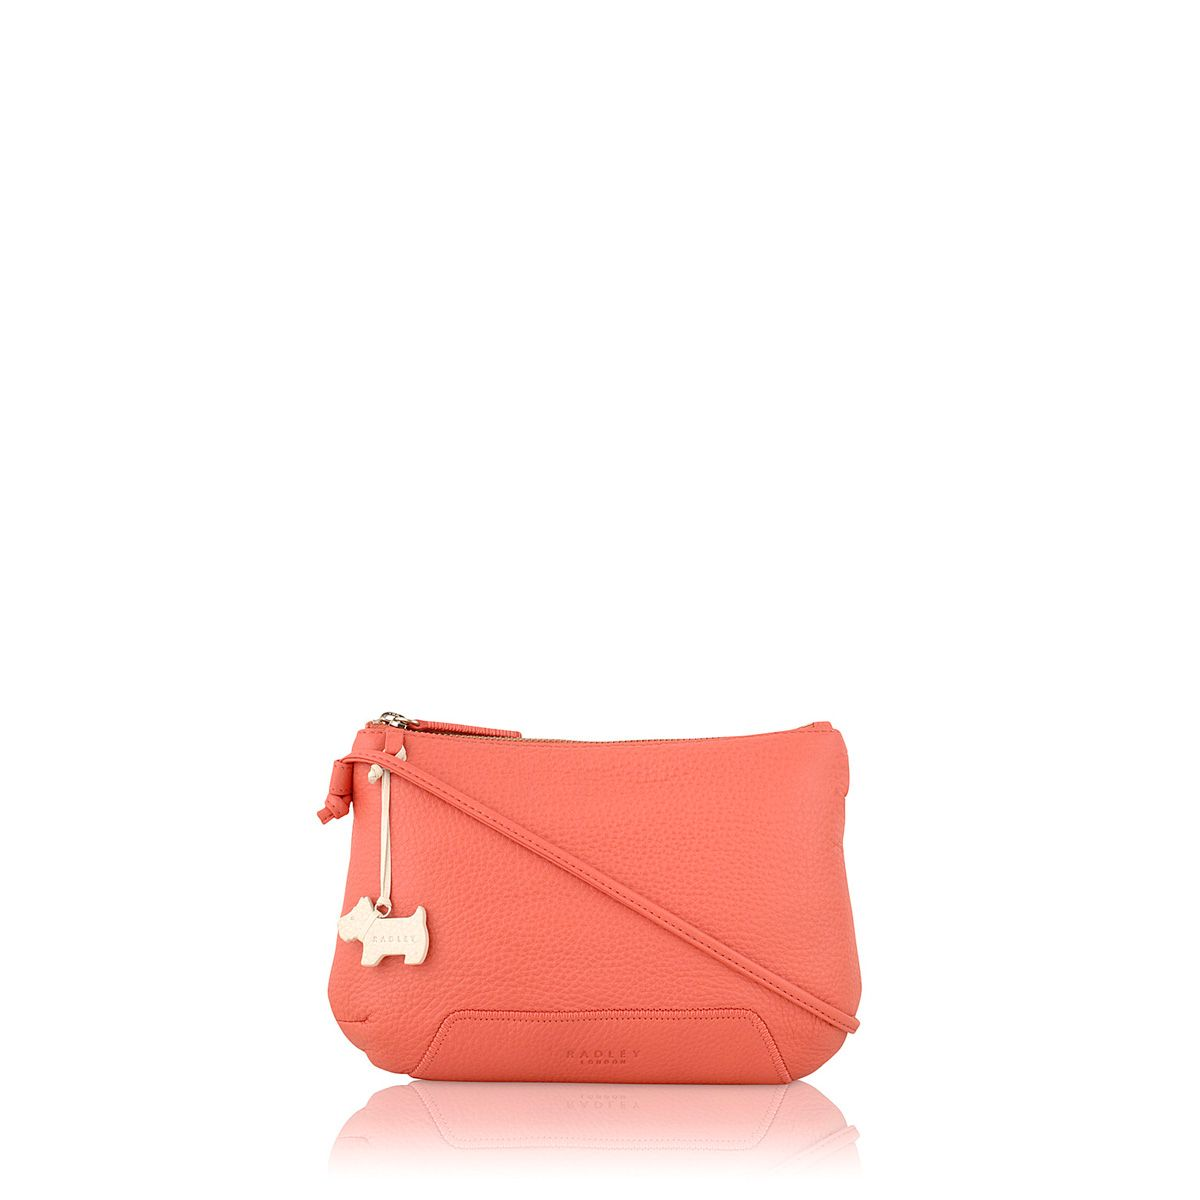 Dayton pink small leather cross body bag